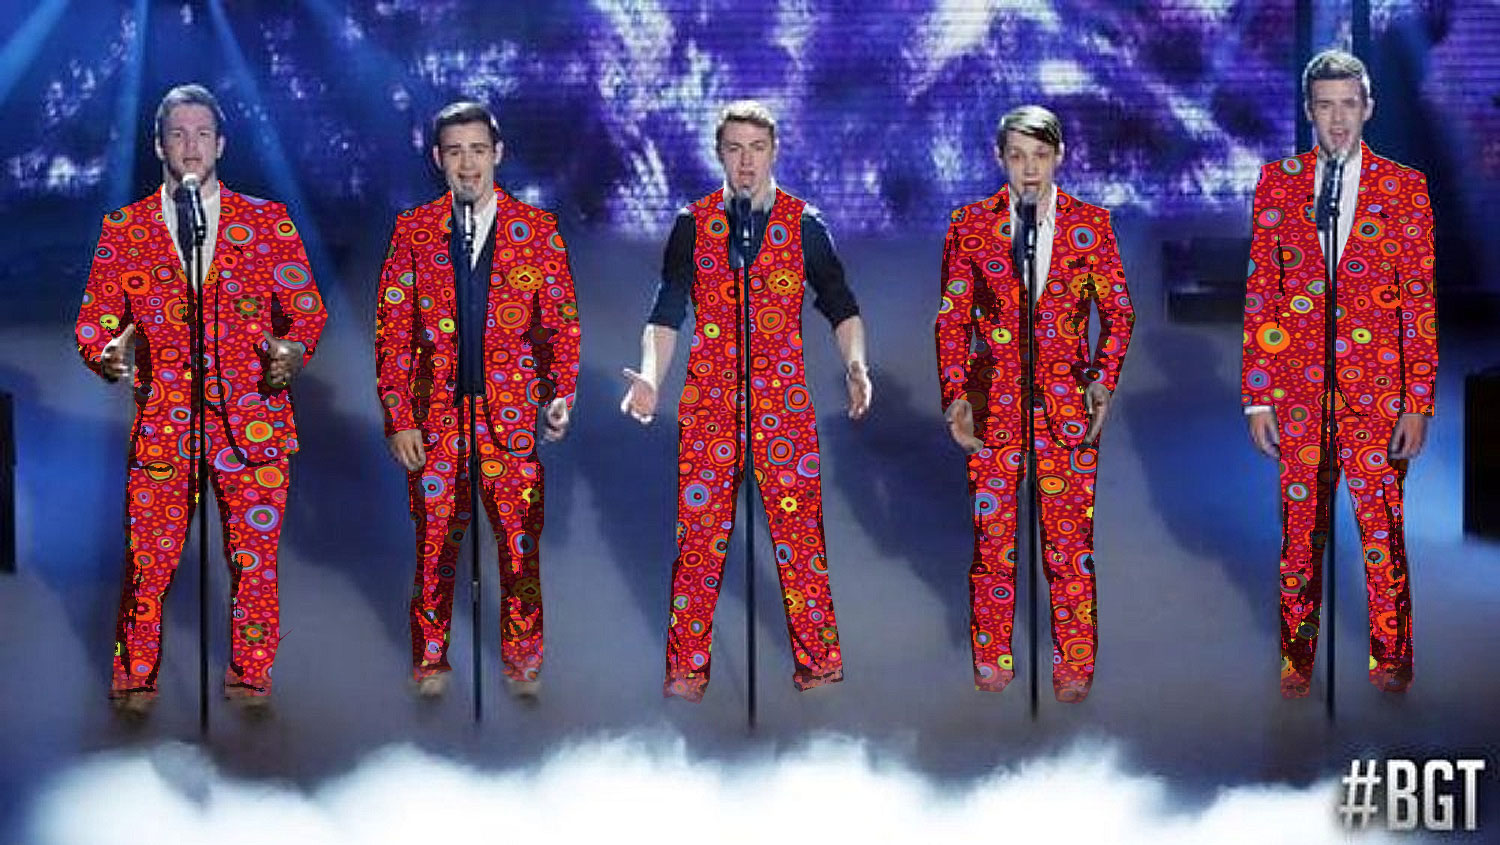 After being offended by criticism of those grey suits, BGT's Collabro get the TrixieLixie razzle-dazzle treatment.